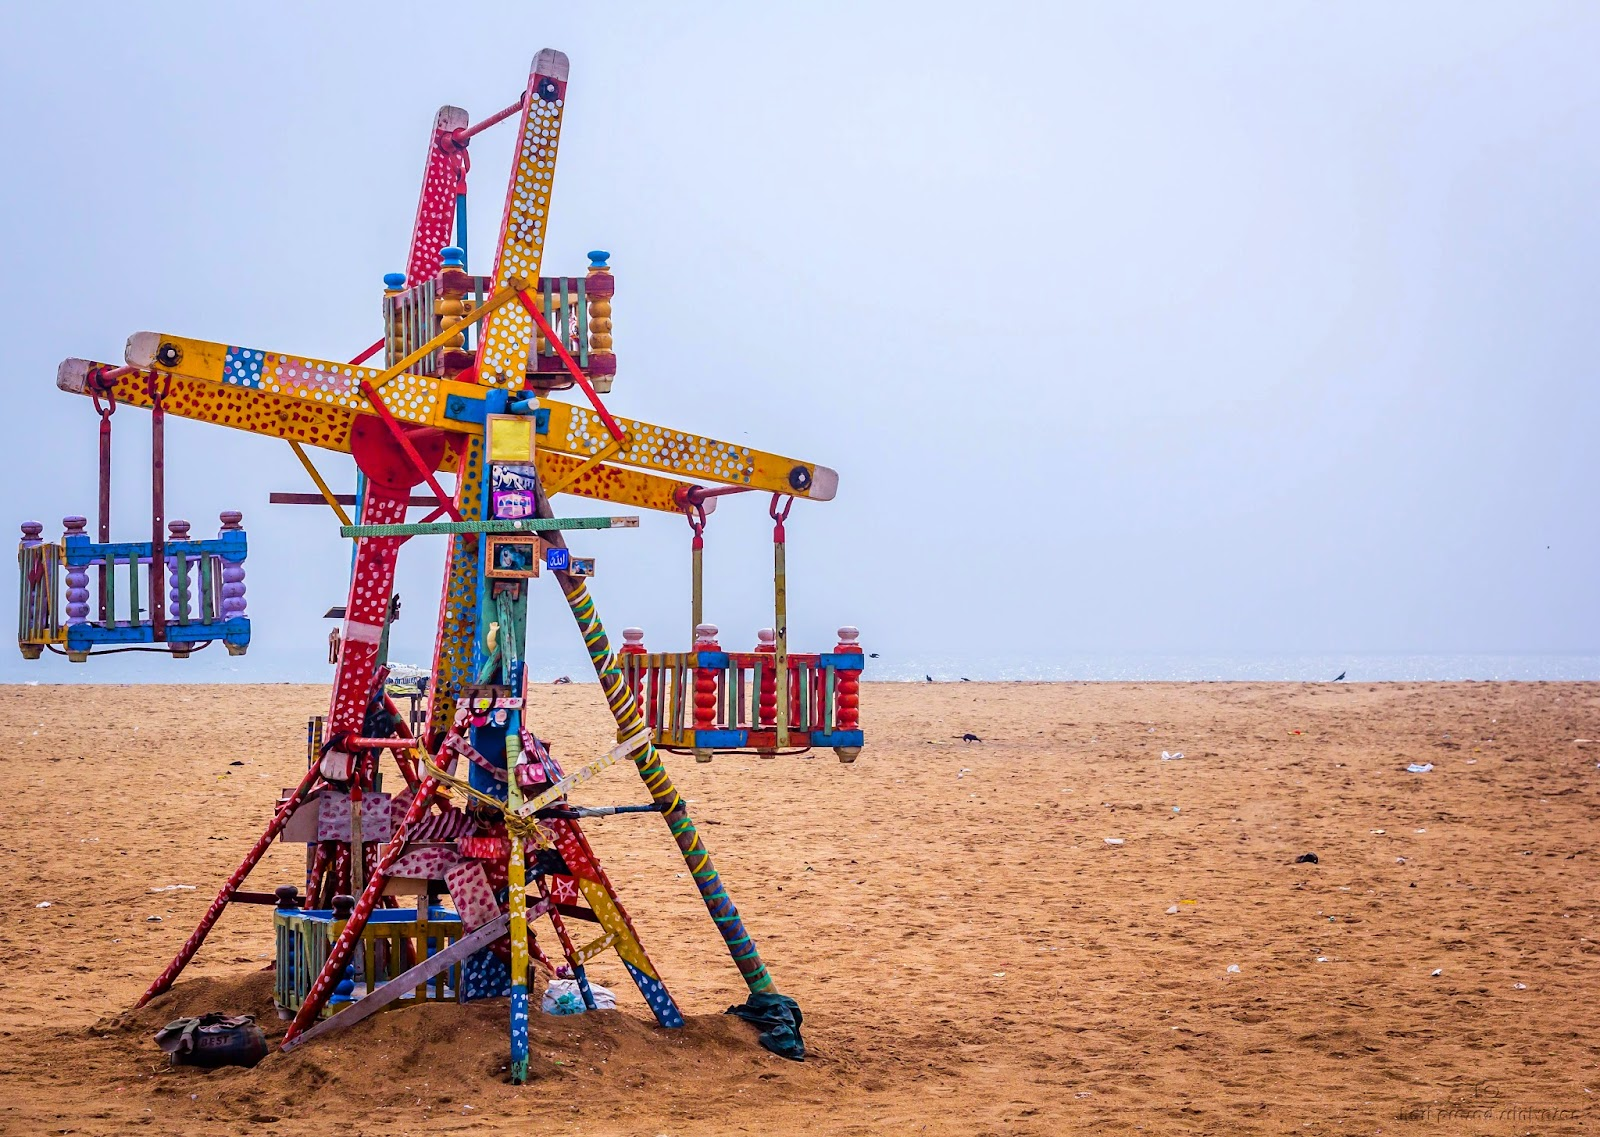 Picture of a Giant Wheel in Chennai beach. Picture taken in a cloudy day.